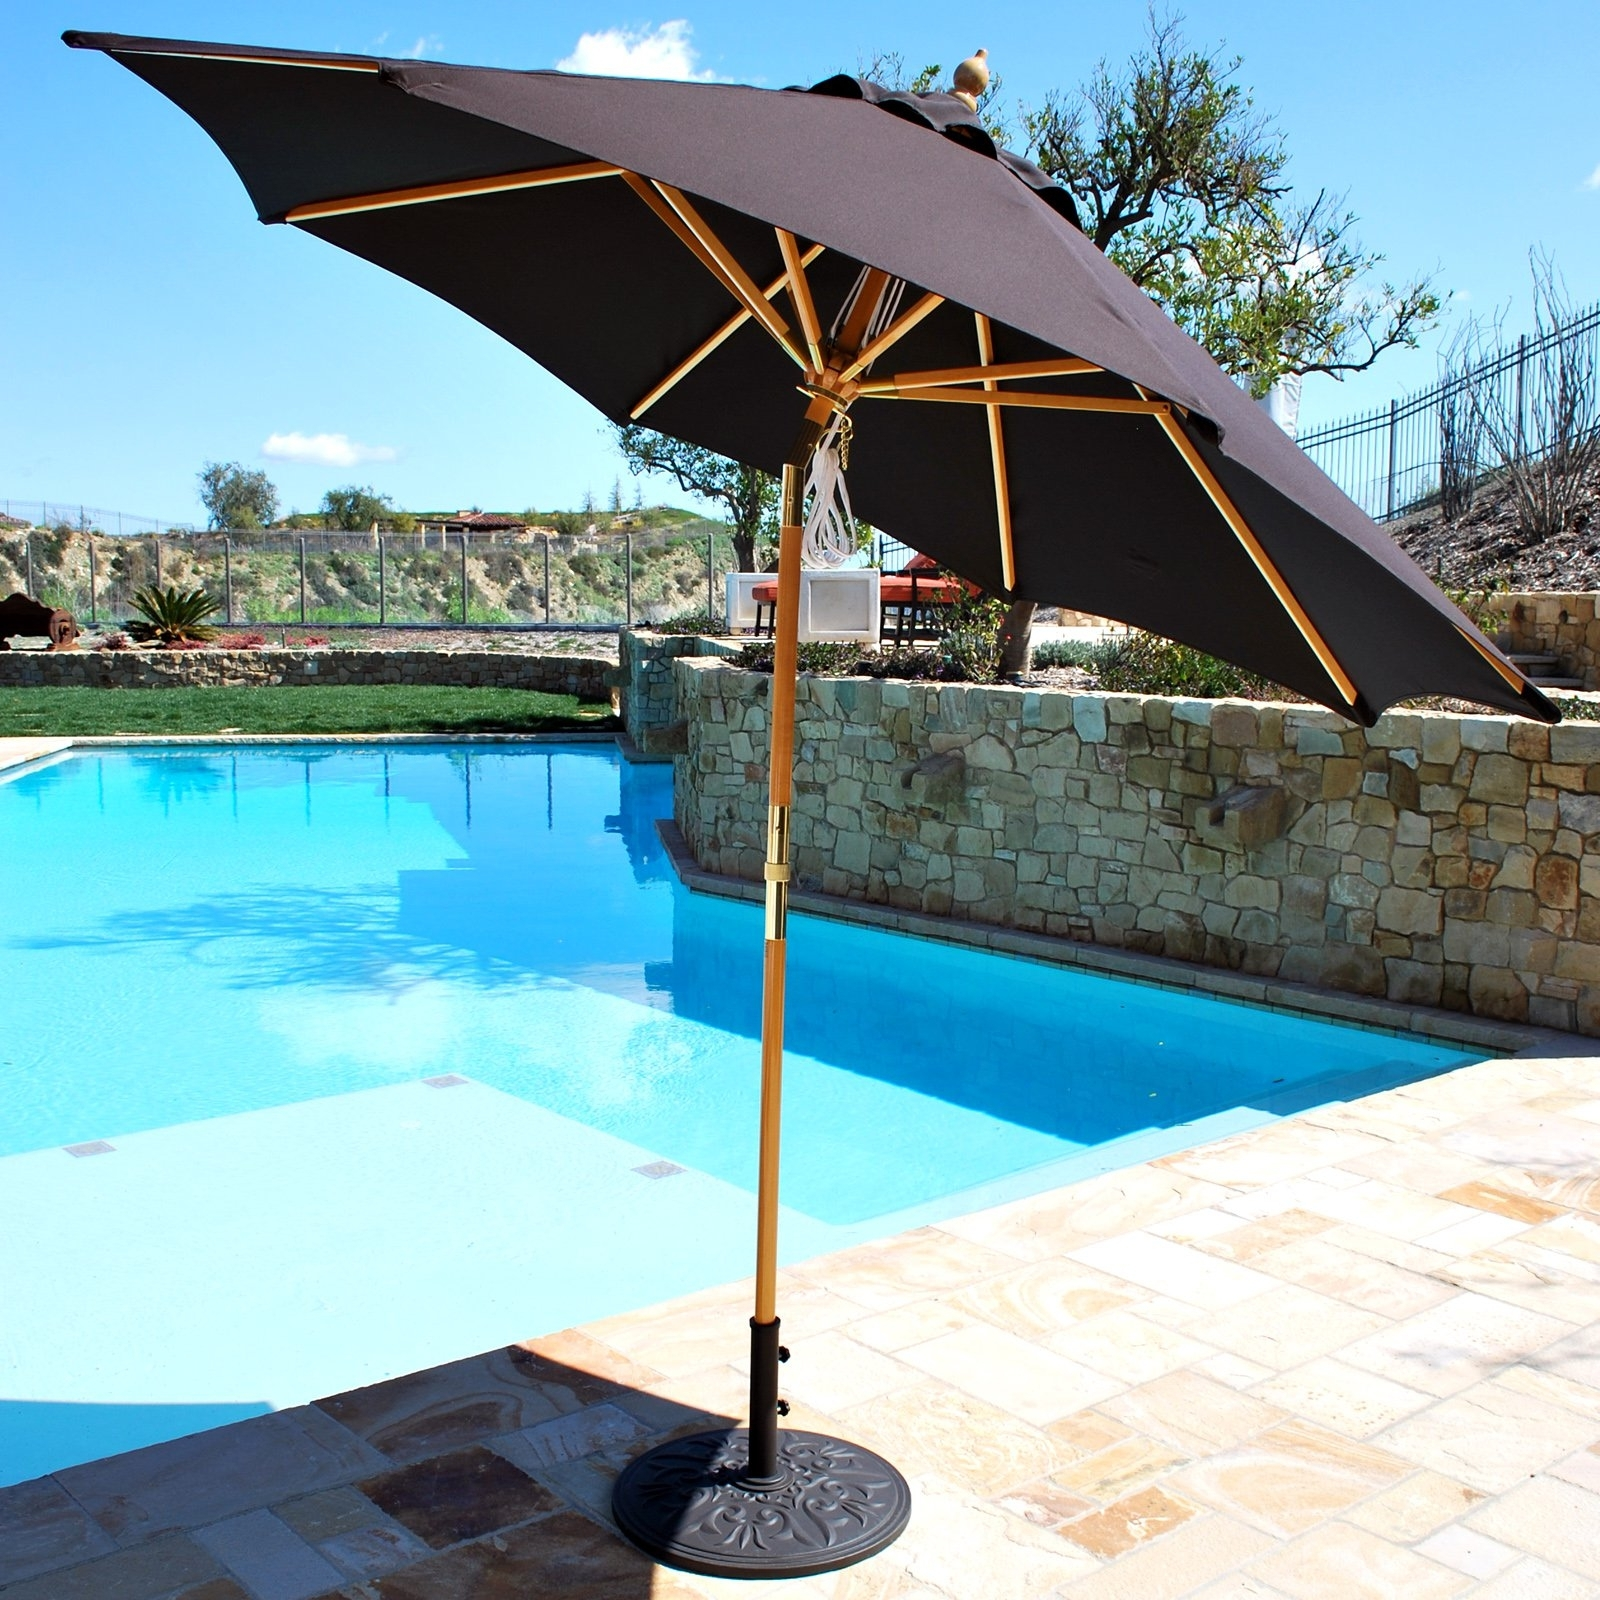 Preferred Tilting Patio Umbrellas Pertaining To Ikea Patio Umbrella Review Awesome Tilting Patio Umbrella 9T7Unk0 (Gallery 9 of 20)